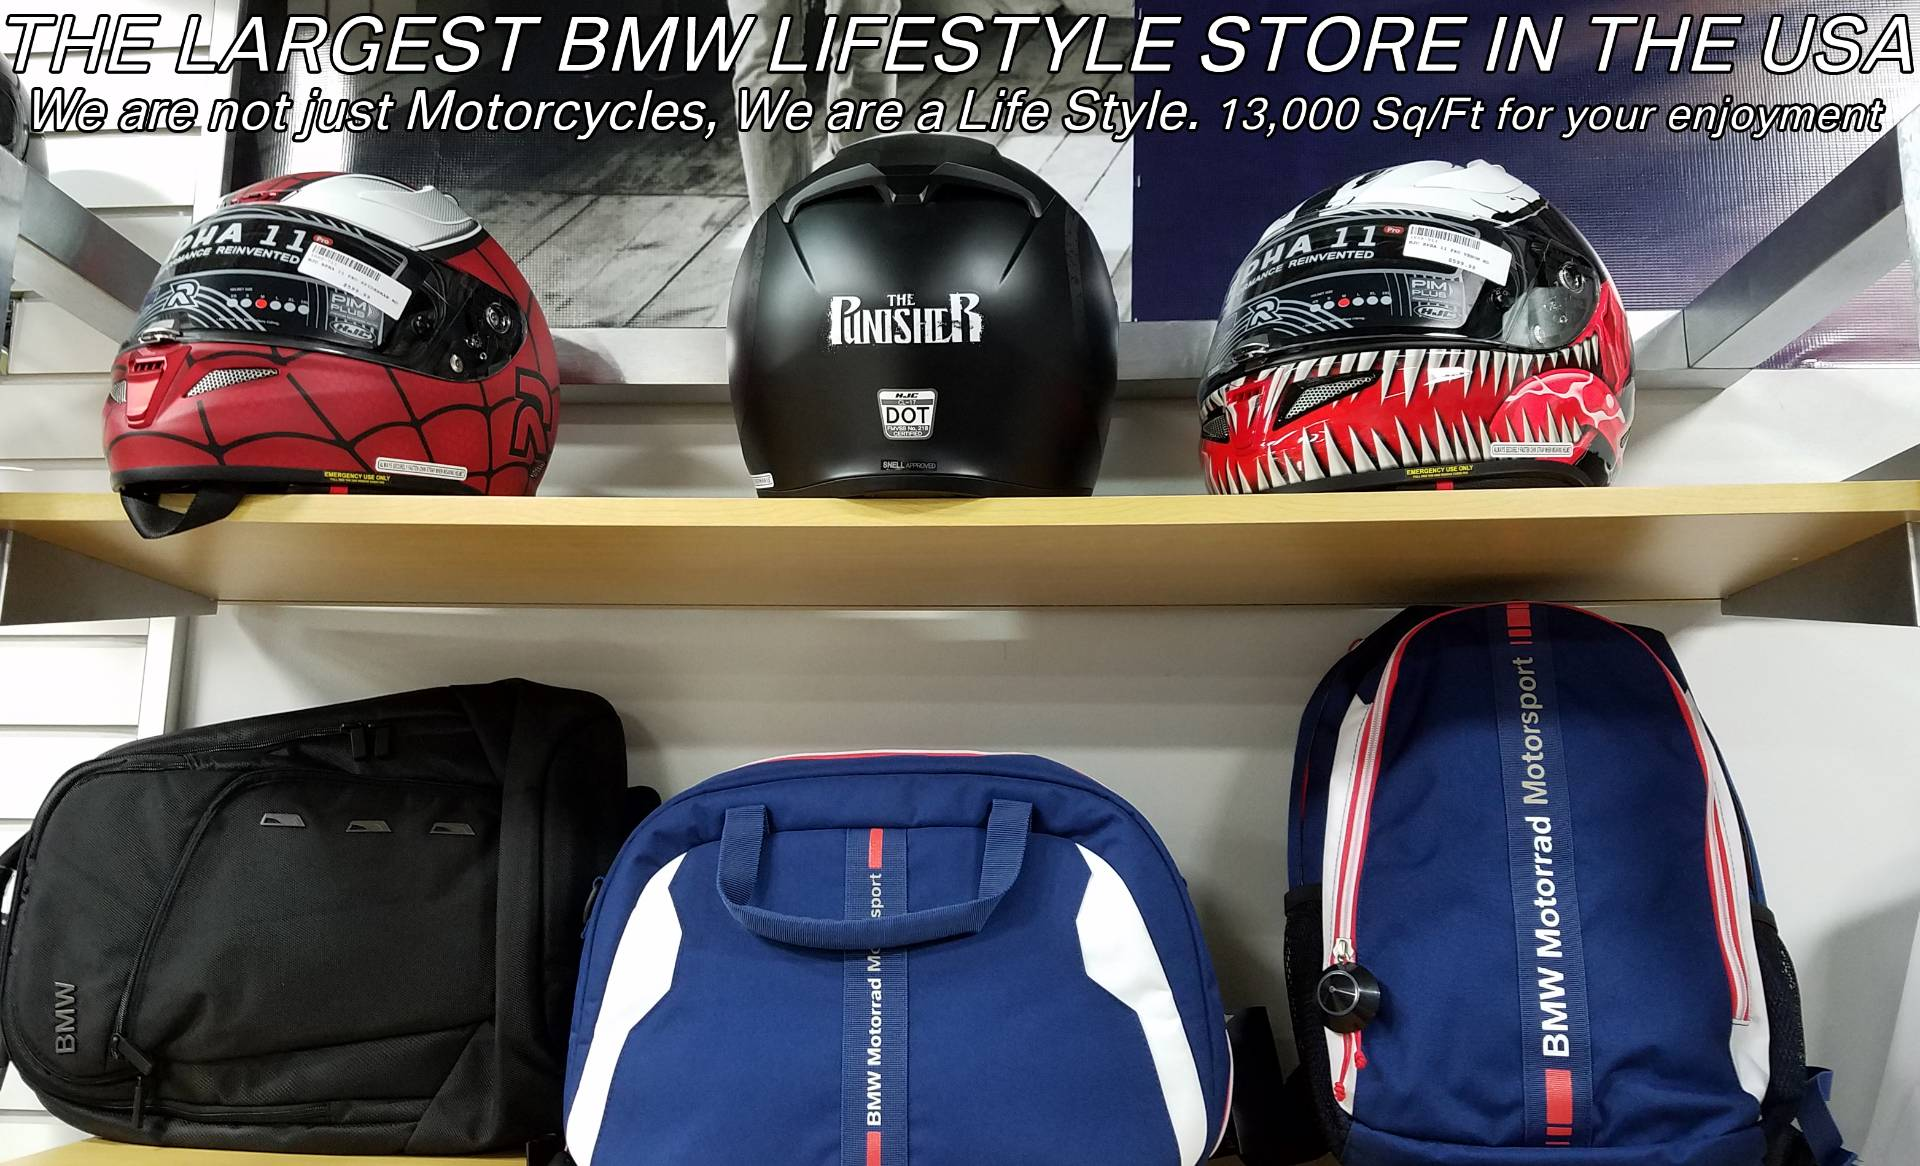 Used 2015 BMW R 1200 GSA for sale, BMW R 1200GSA for sale, BMW Motorcycle R1200GSA, used BMW Adventure, Dual, GS, BMW. BMW Motorcycles of Miami, Motorcycles of Miami, Motorcycles Miami, New Motorcycles, Used Motorcycles, pre-owned. #BMWMotorcyclesOfMiami #MotorcyclesOfMiami. - Photo 36